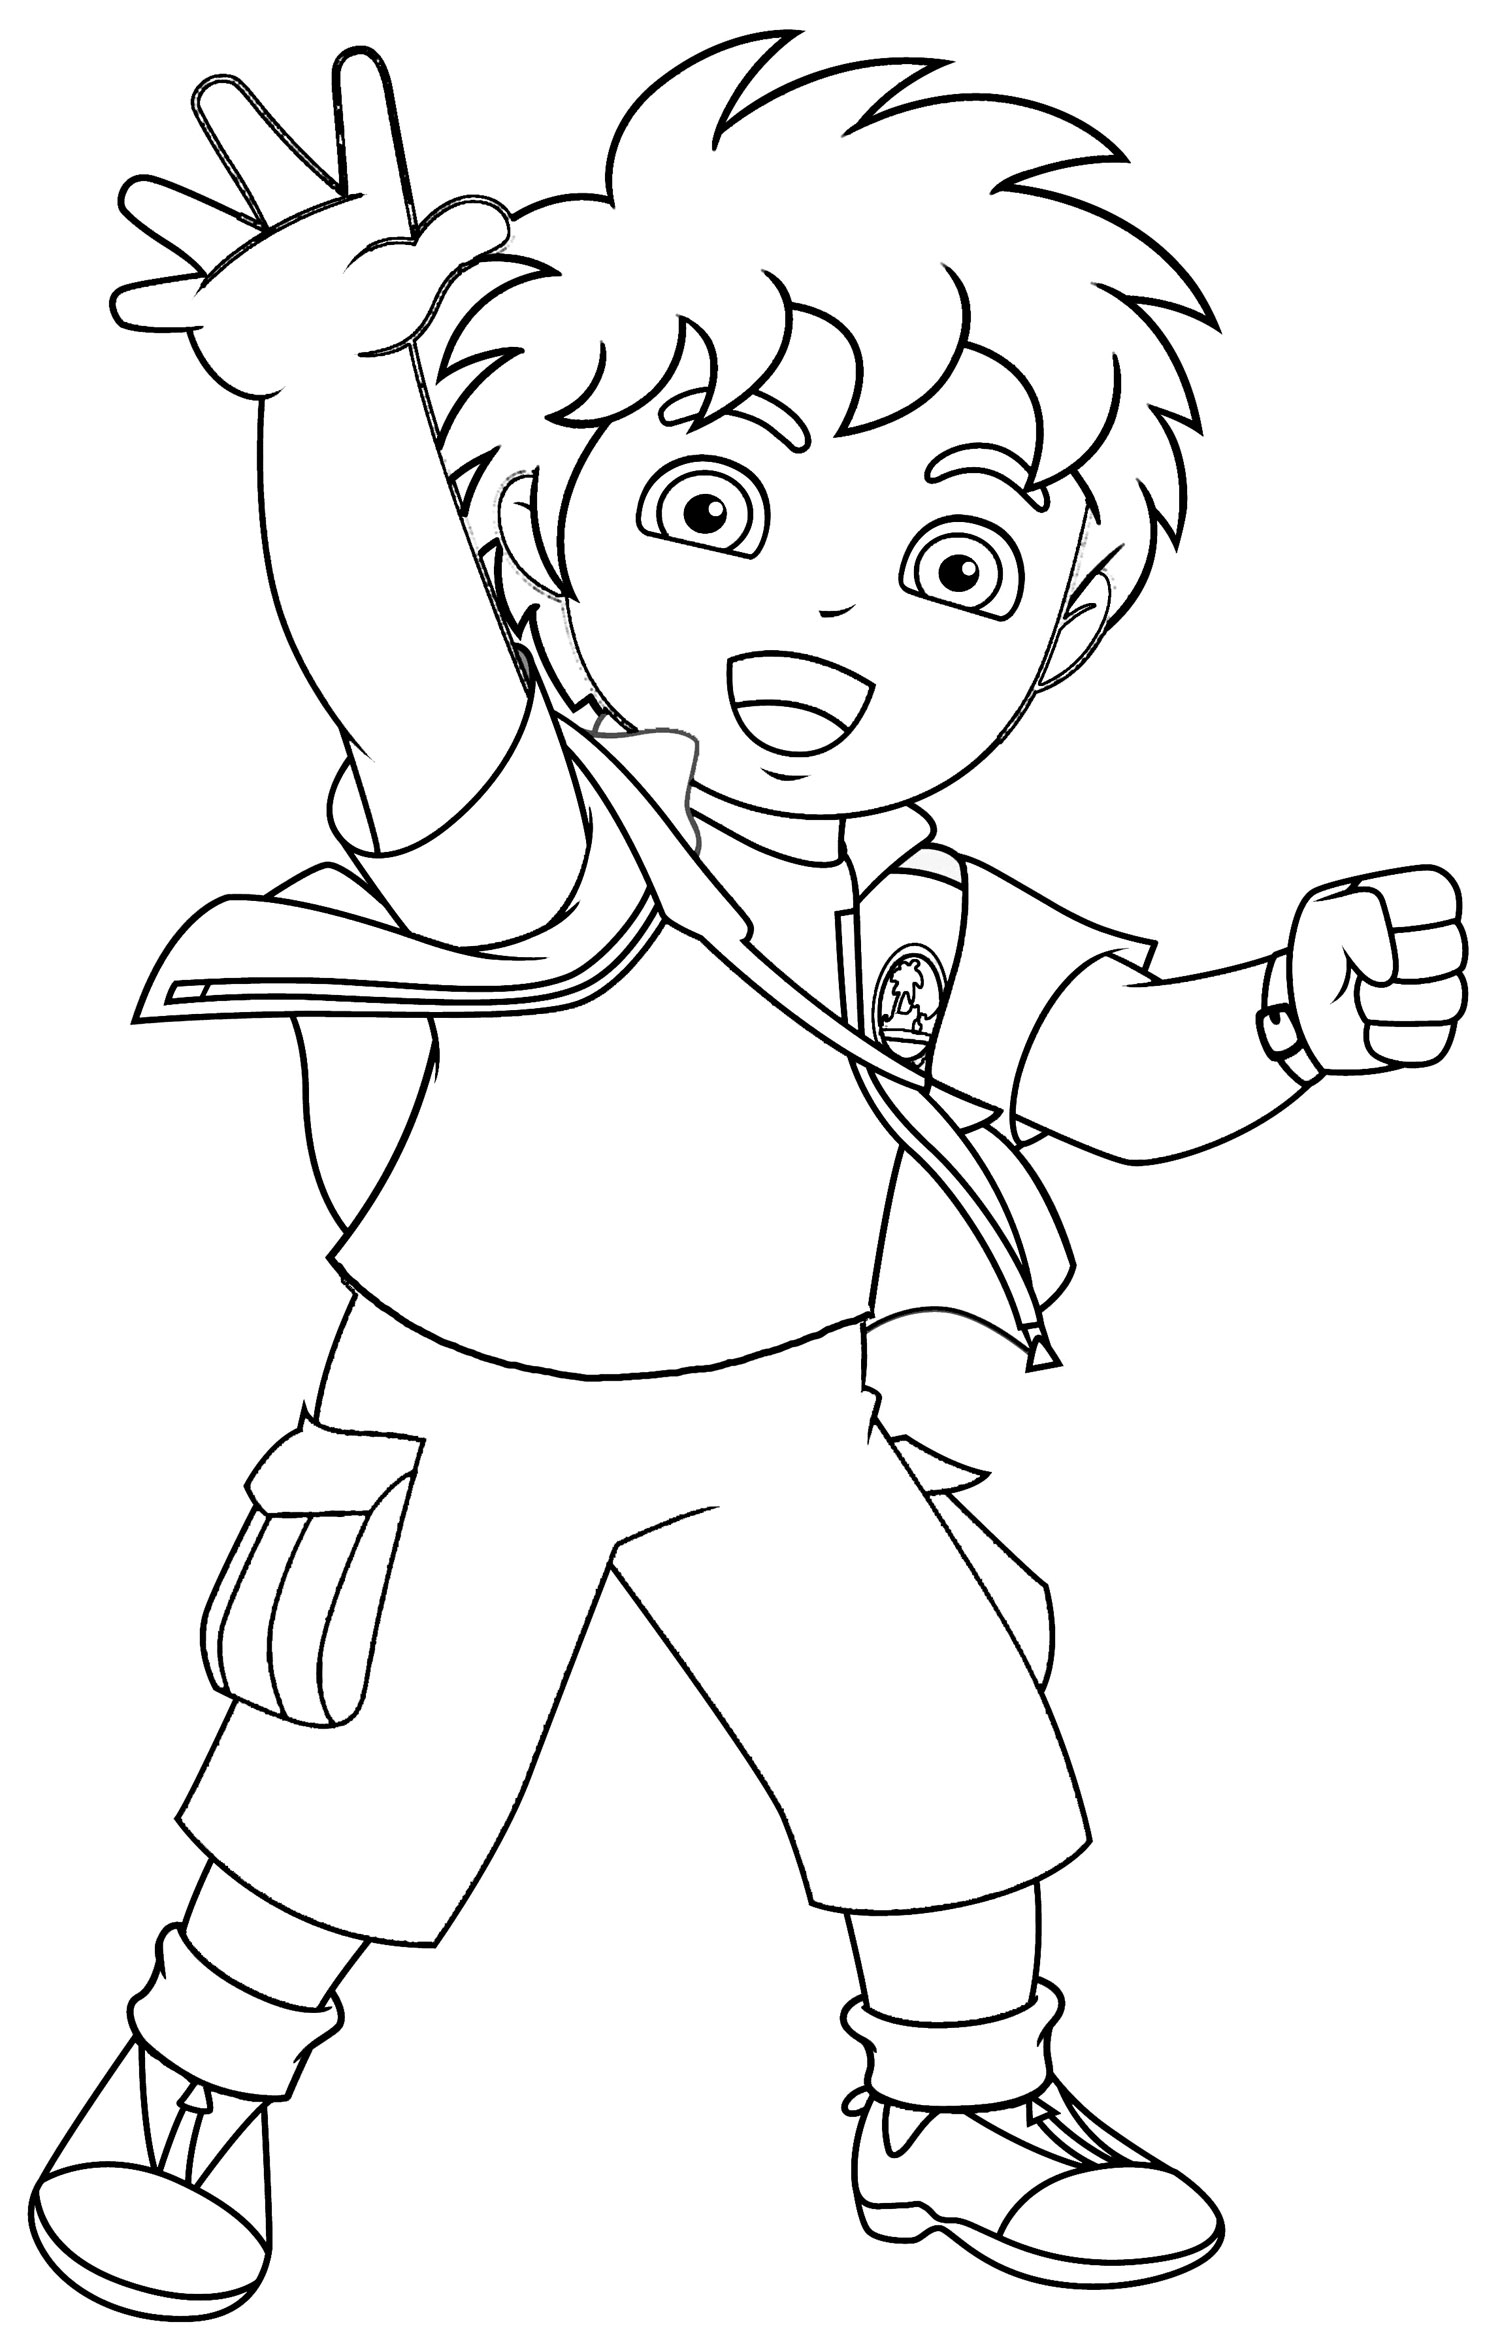 childs play coloring pages - photo #5